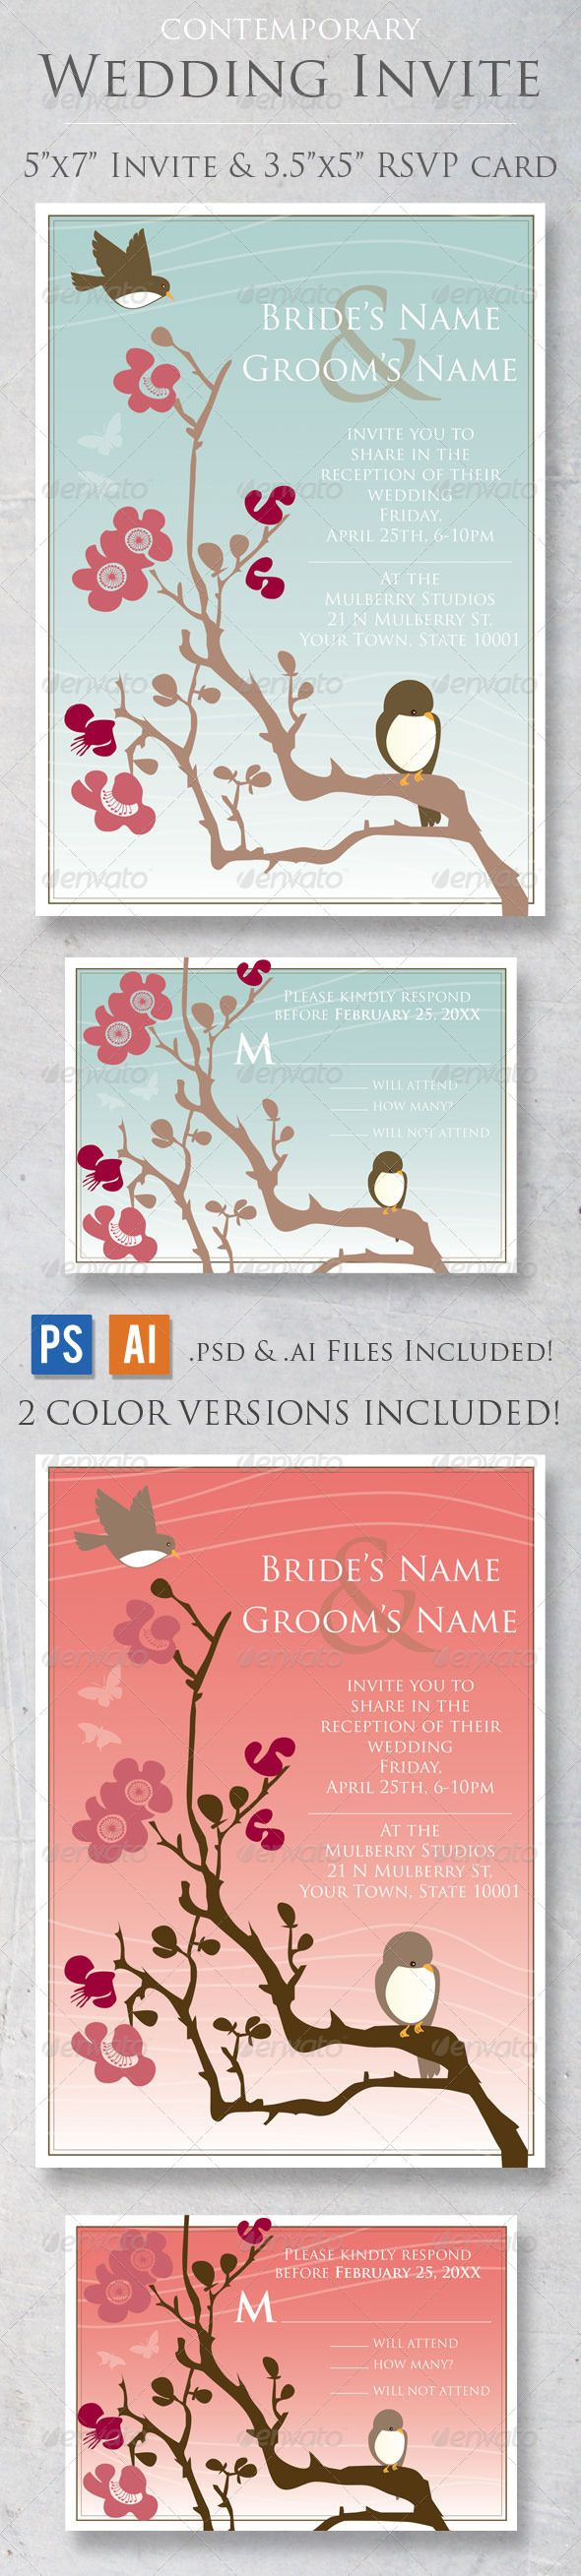 free wedding invitation psd%0A Contemporary Wedding Invite